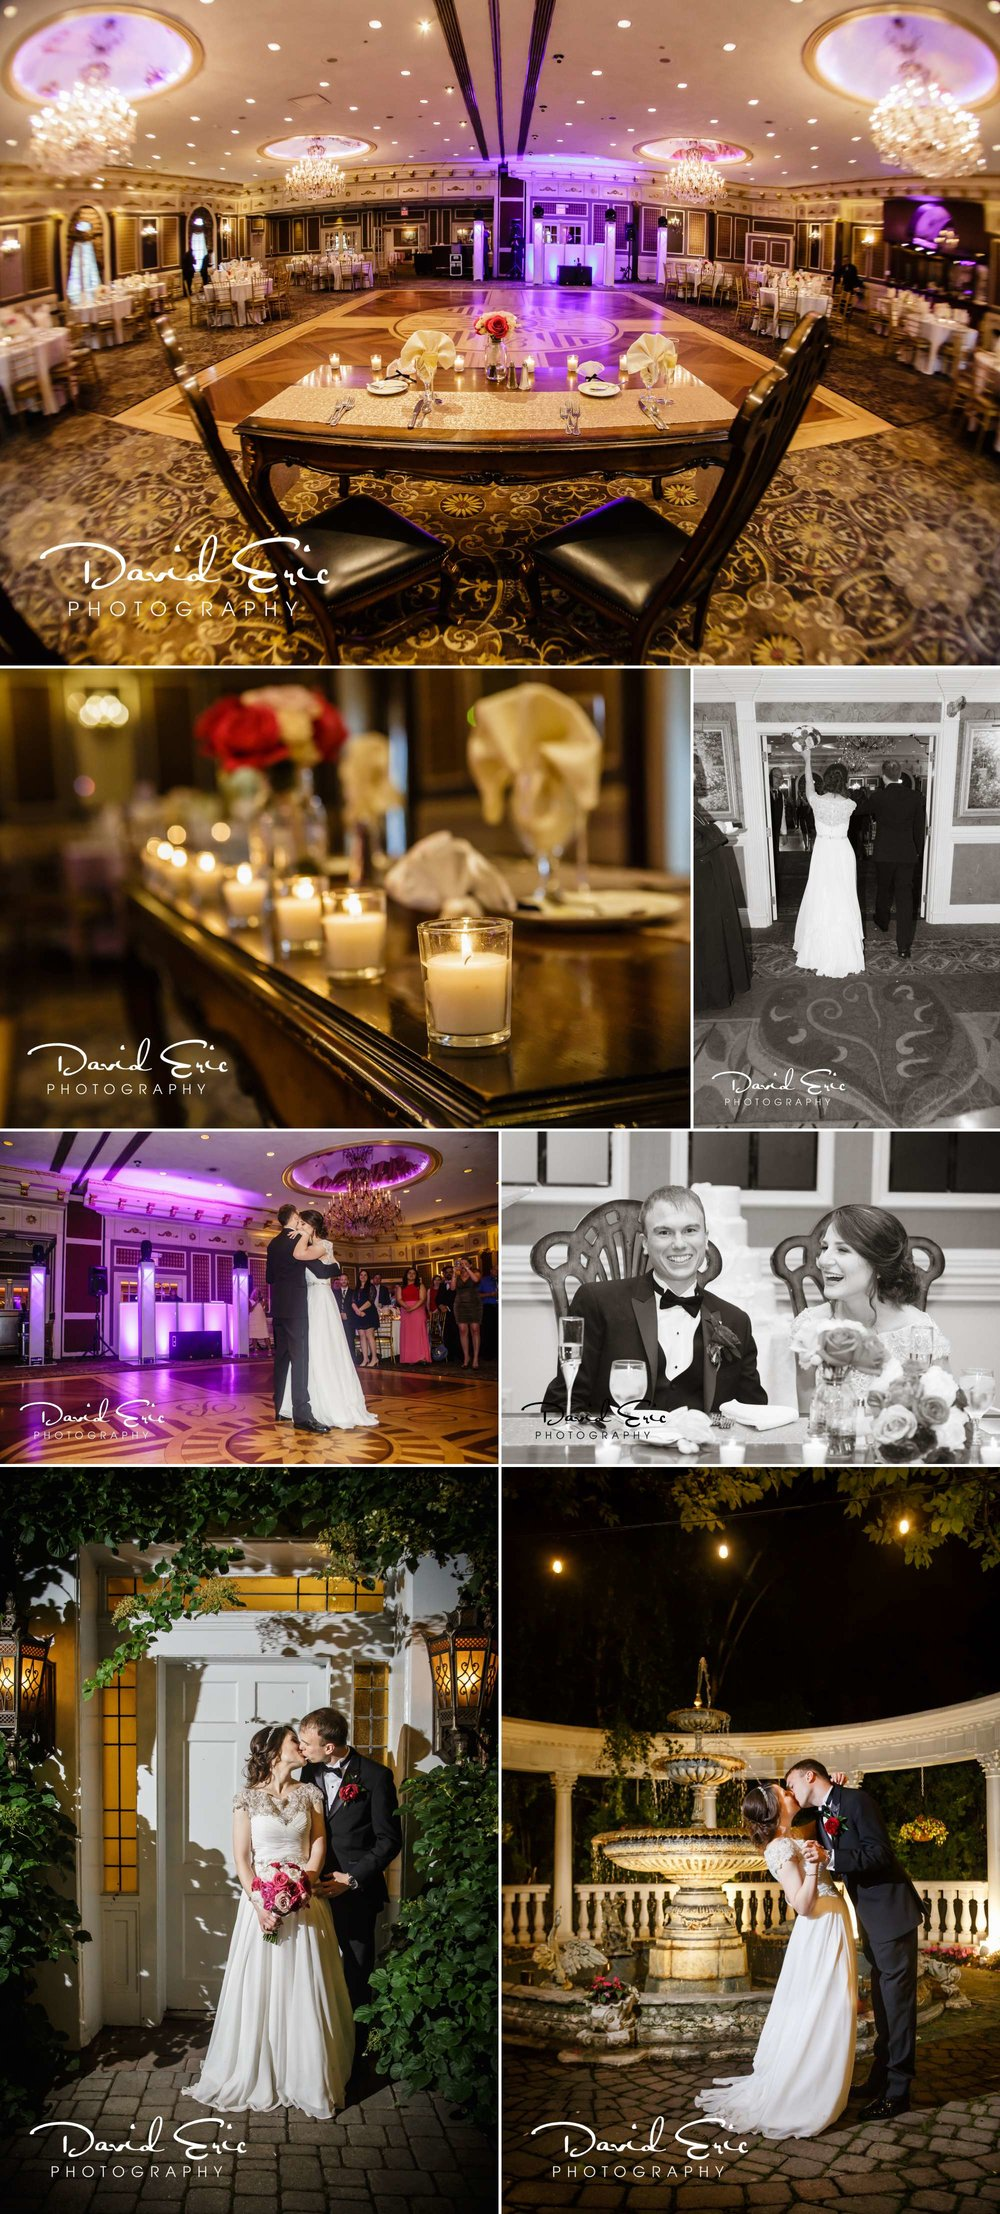 Their reception was held in the Grand Ballroom at the Brownstone in Paterson, NJ